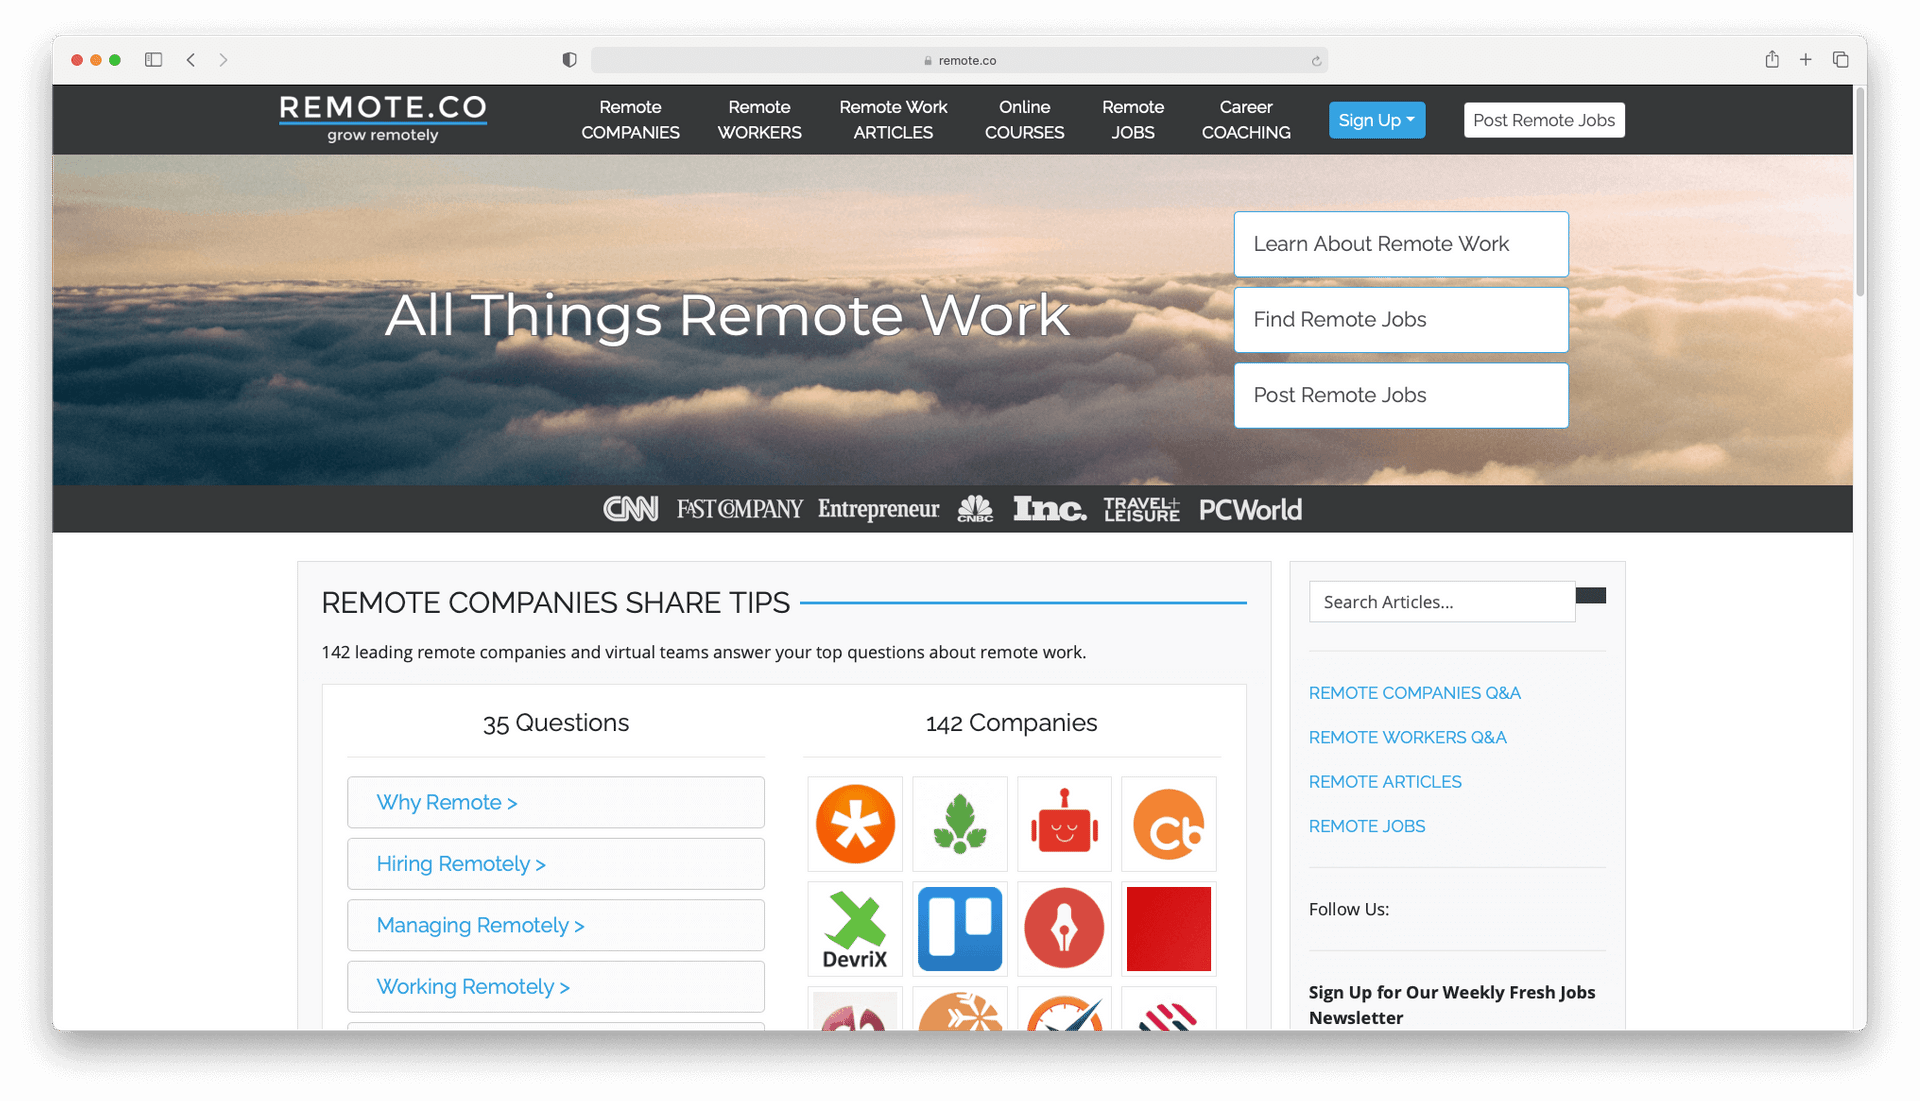 Remote.co - See How to Find Jobs